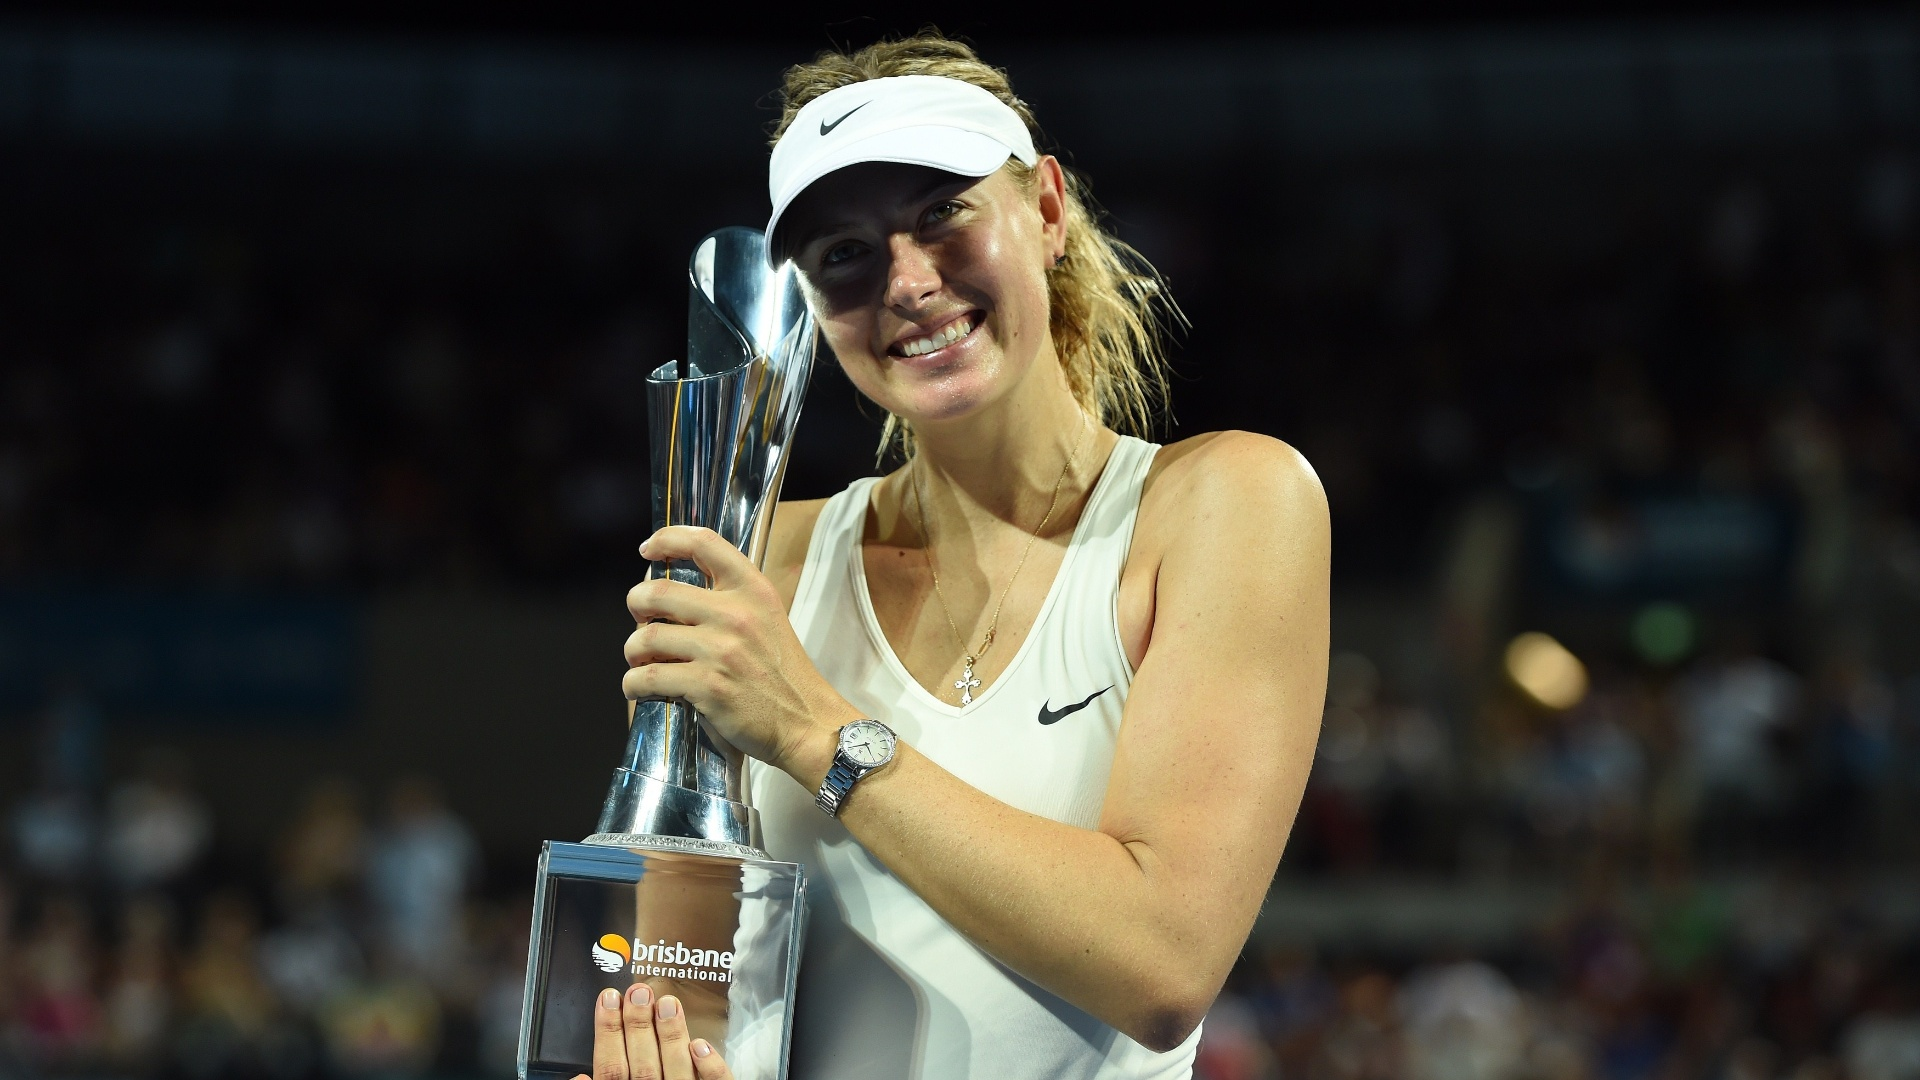 Sharapova posa para fotos com a taça do WTA de Brisbane